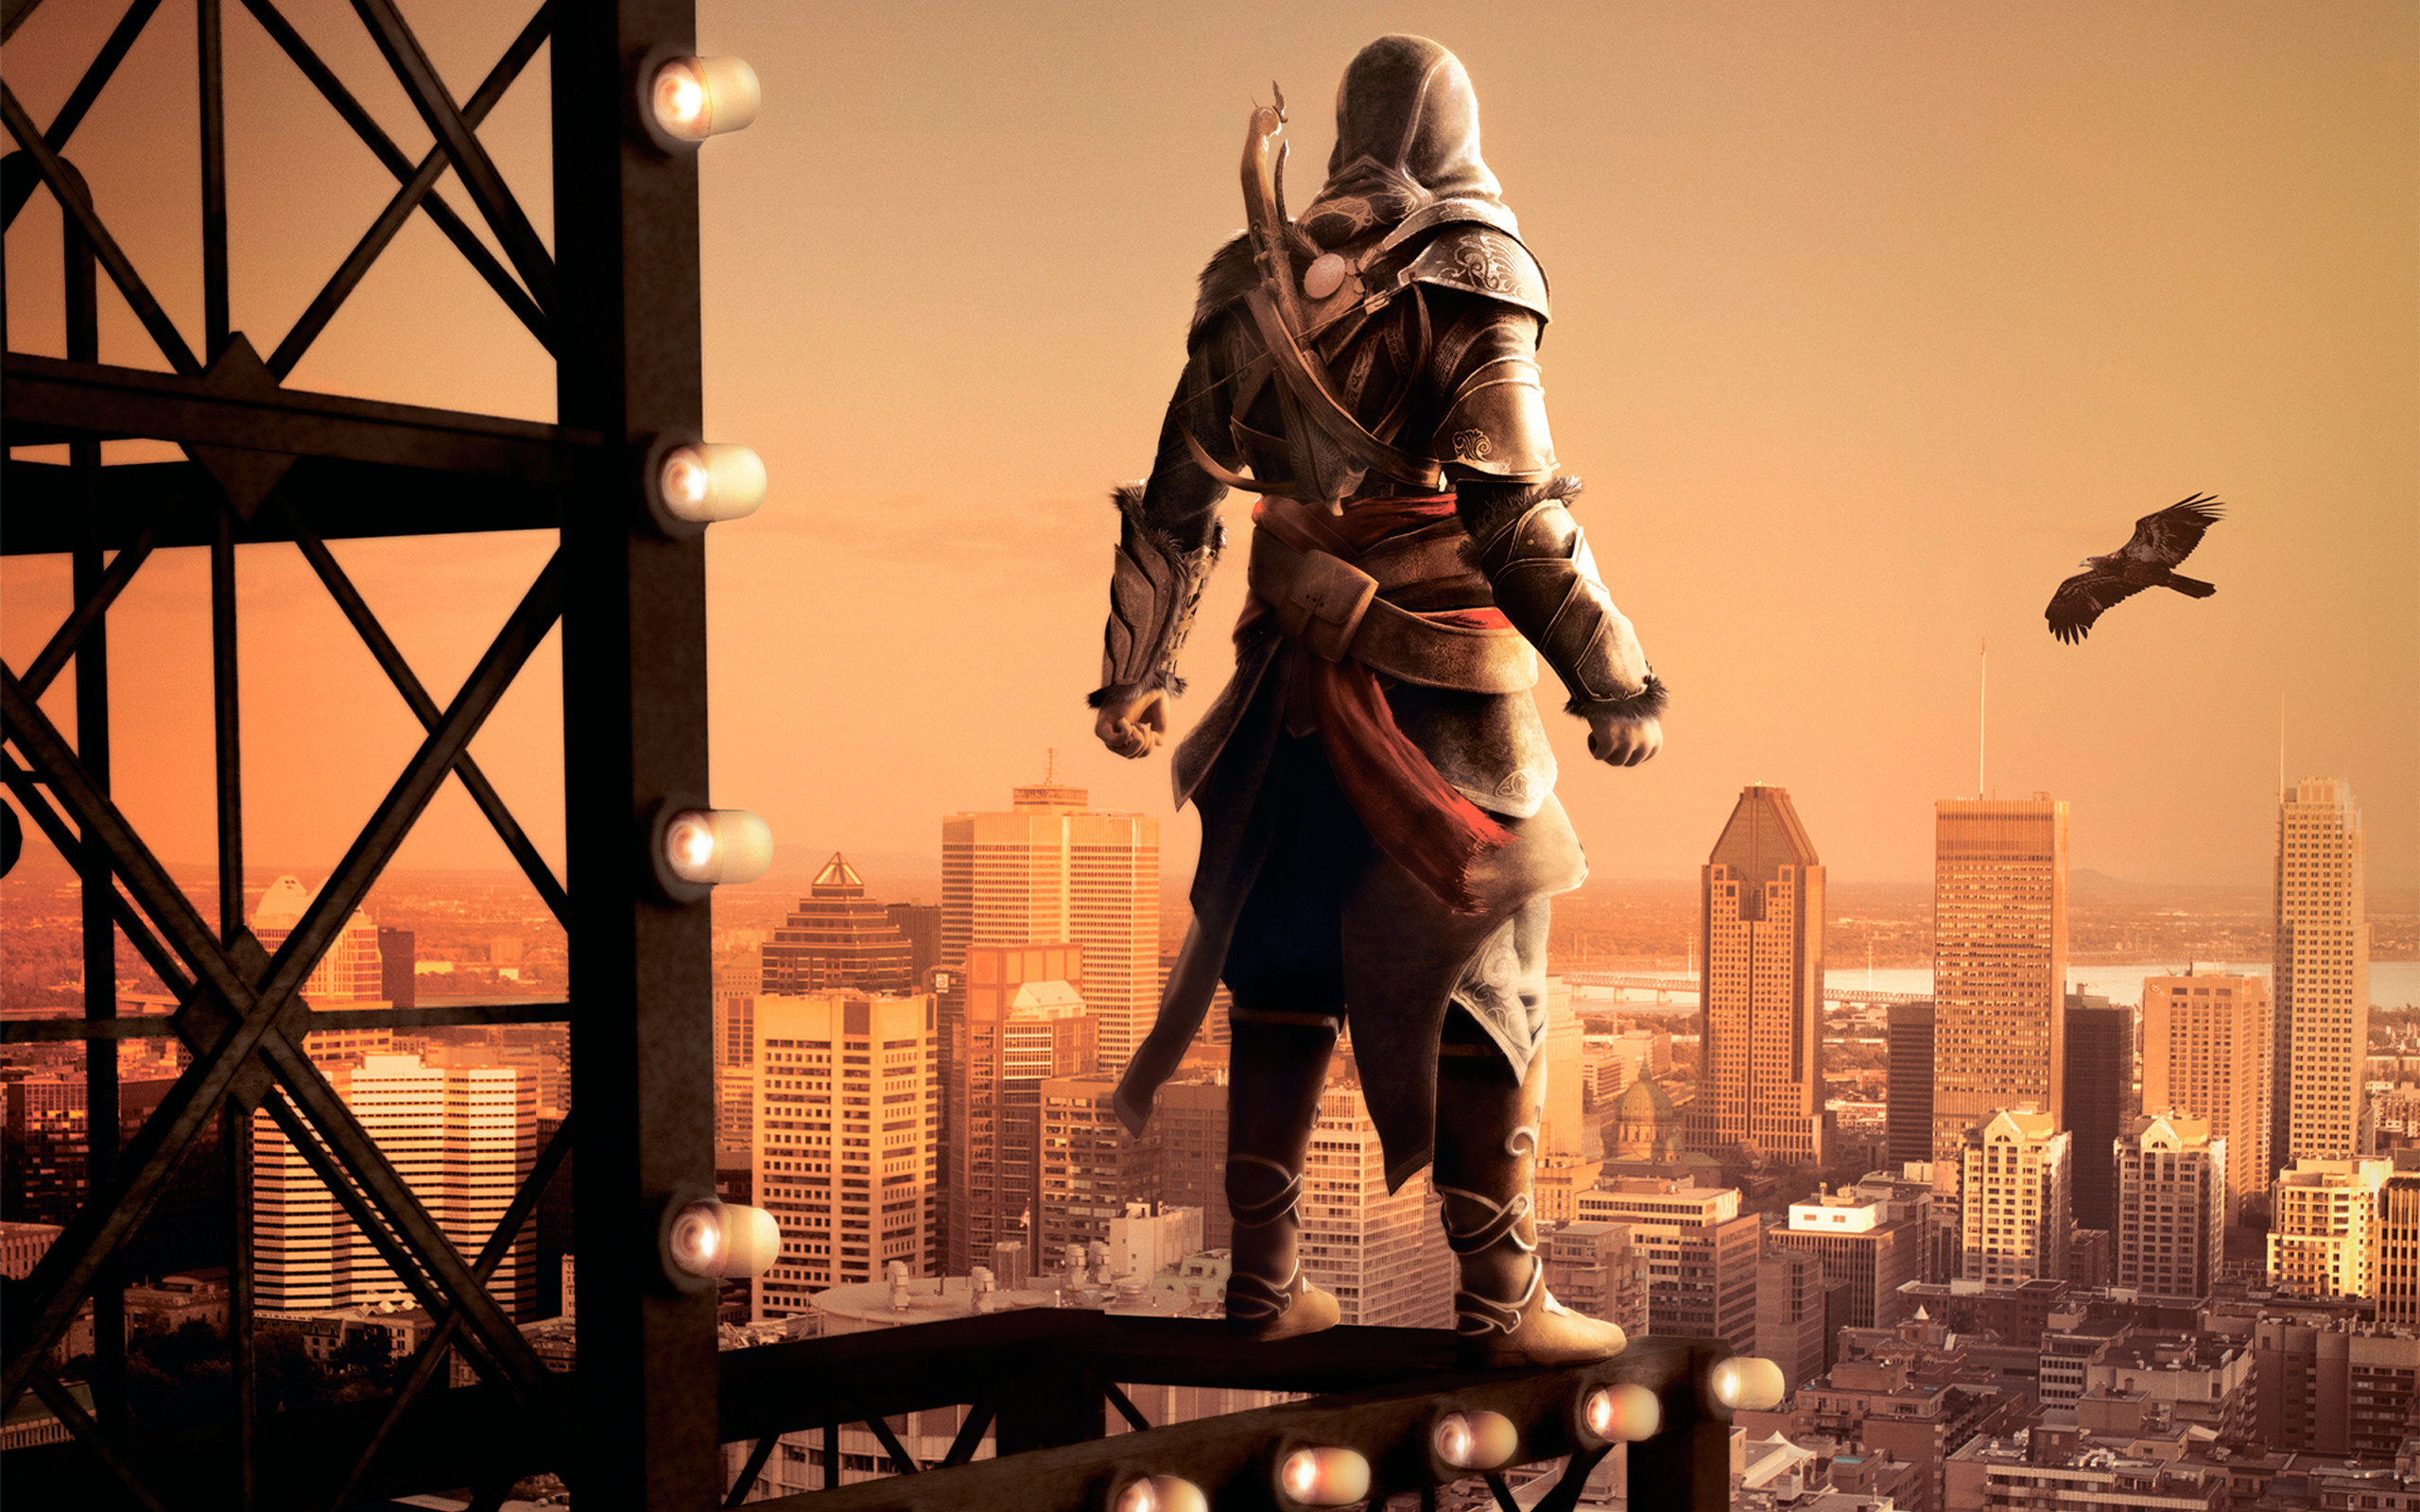 Assassin's creed revelations in Monreal